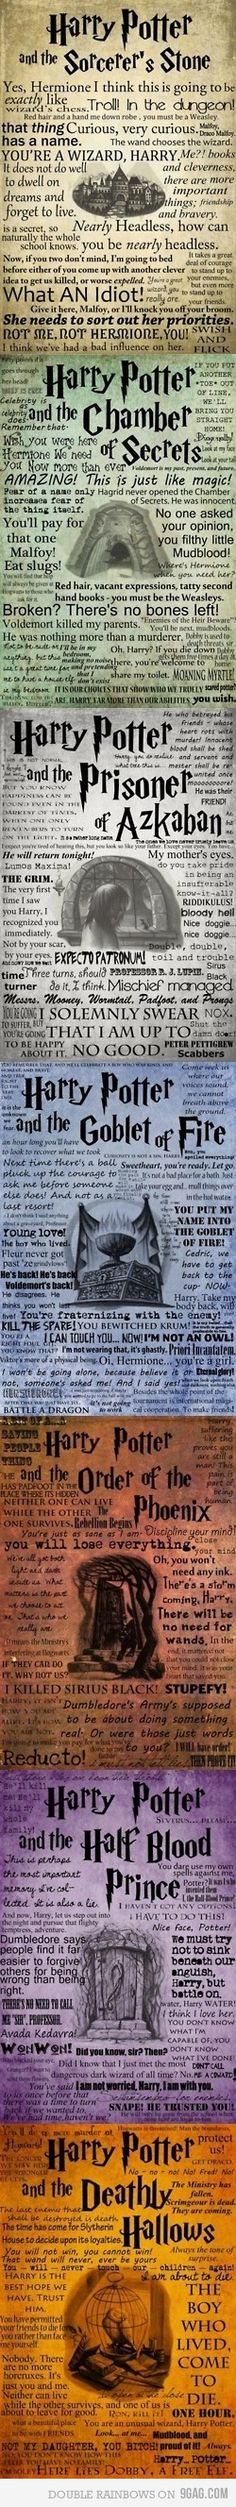 Harry Potter quotes poster for Sorcerer's Stone, Chamber of Secrets, Prisoner of Azkaban, Goblet of Fire, Order of Phoenix, Half-Blood Price, Deathly Hallows Video Games Posters